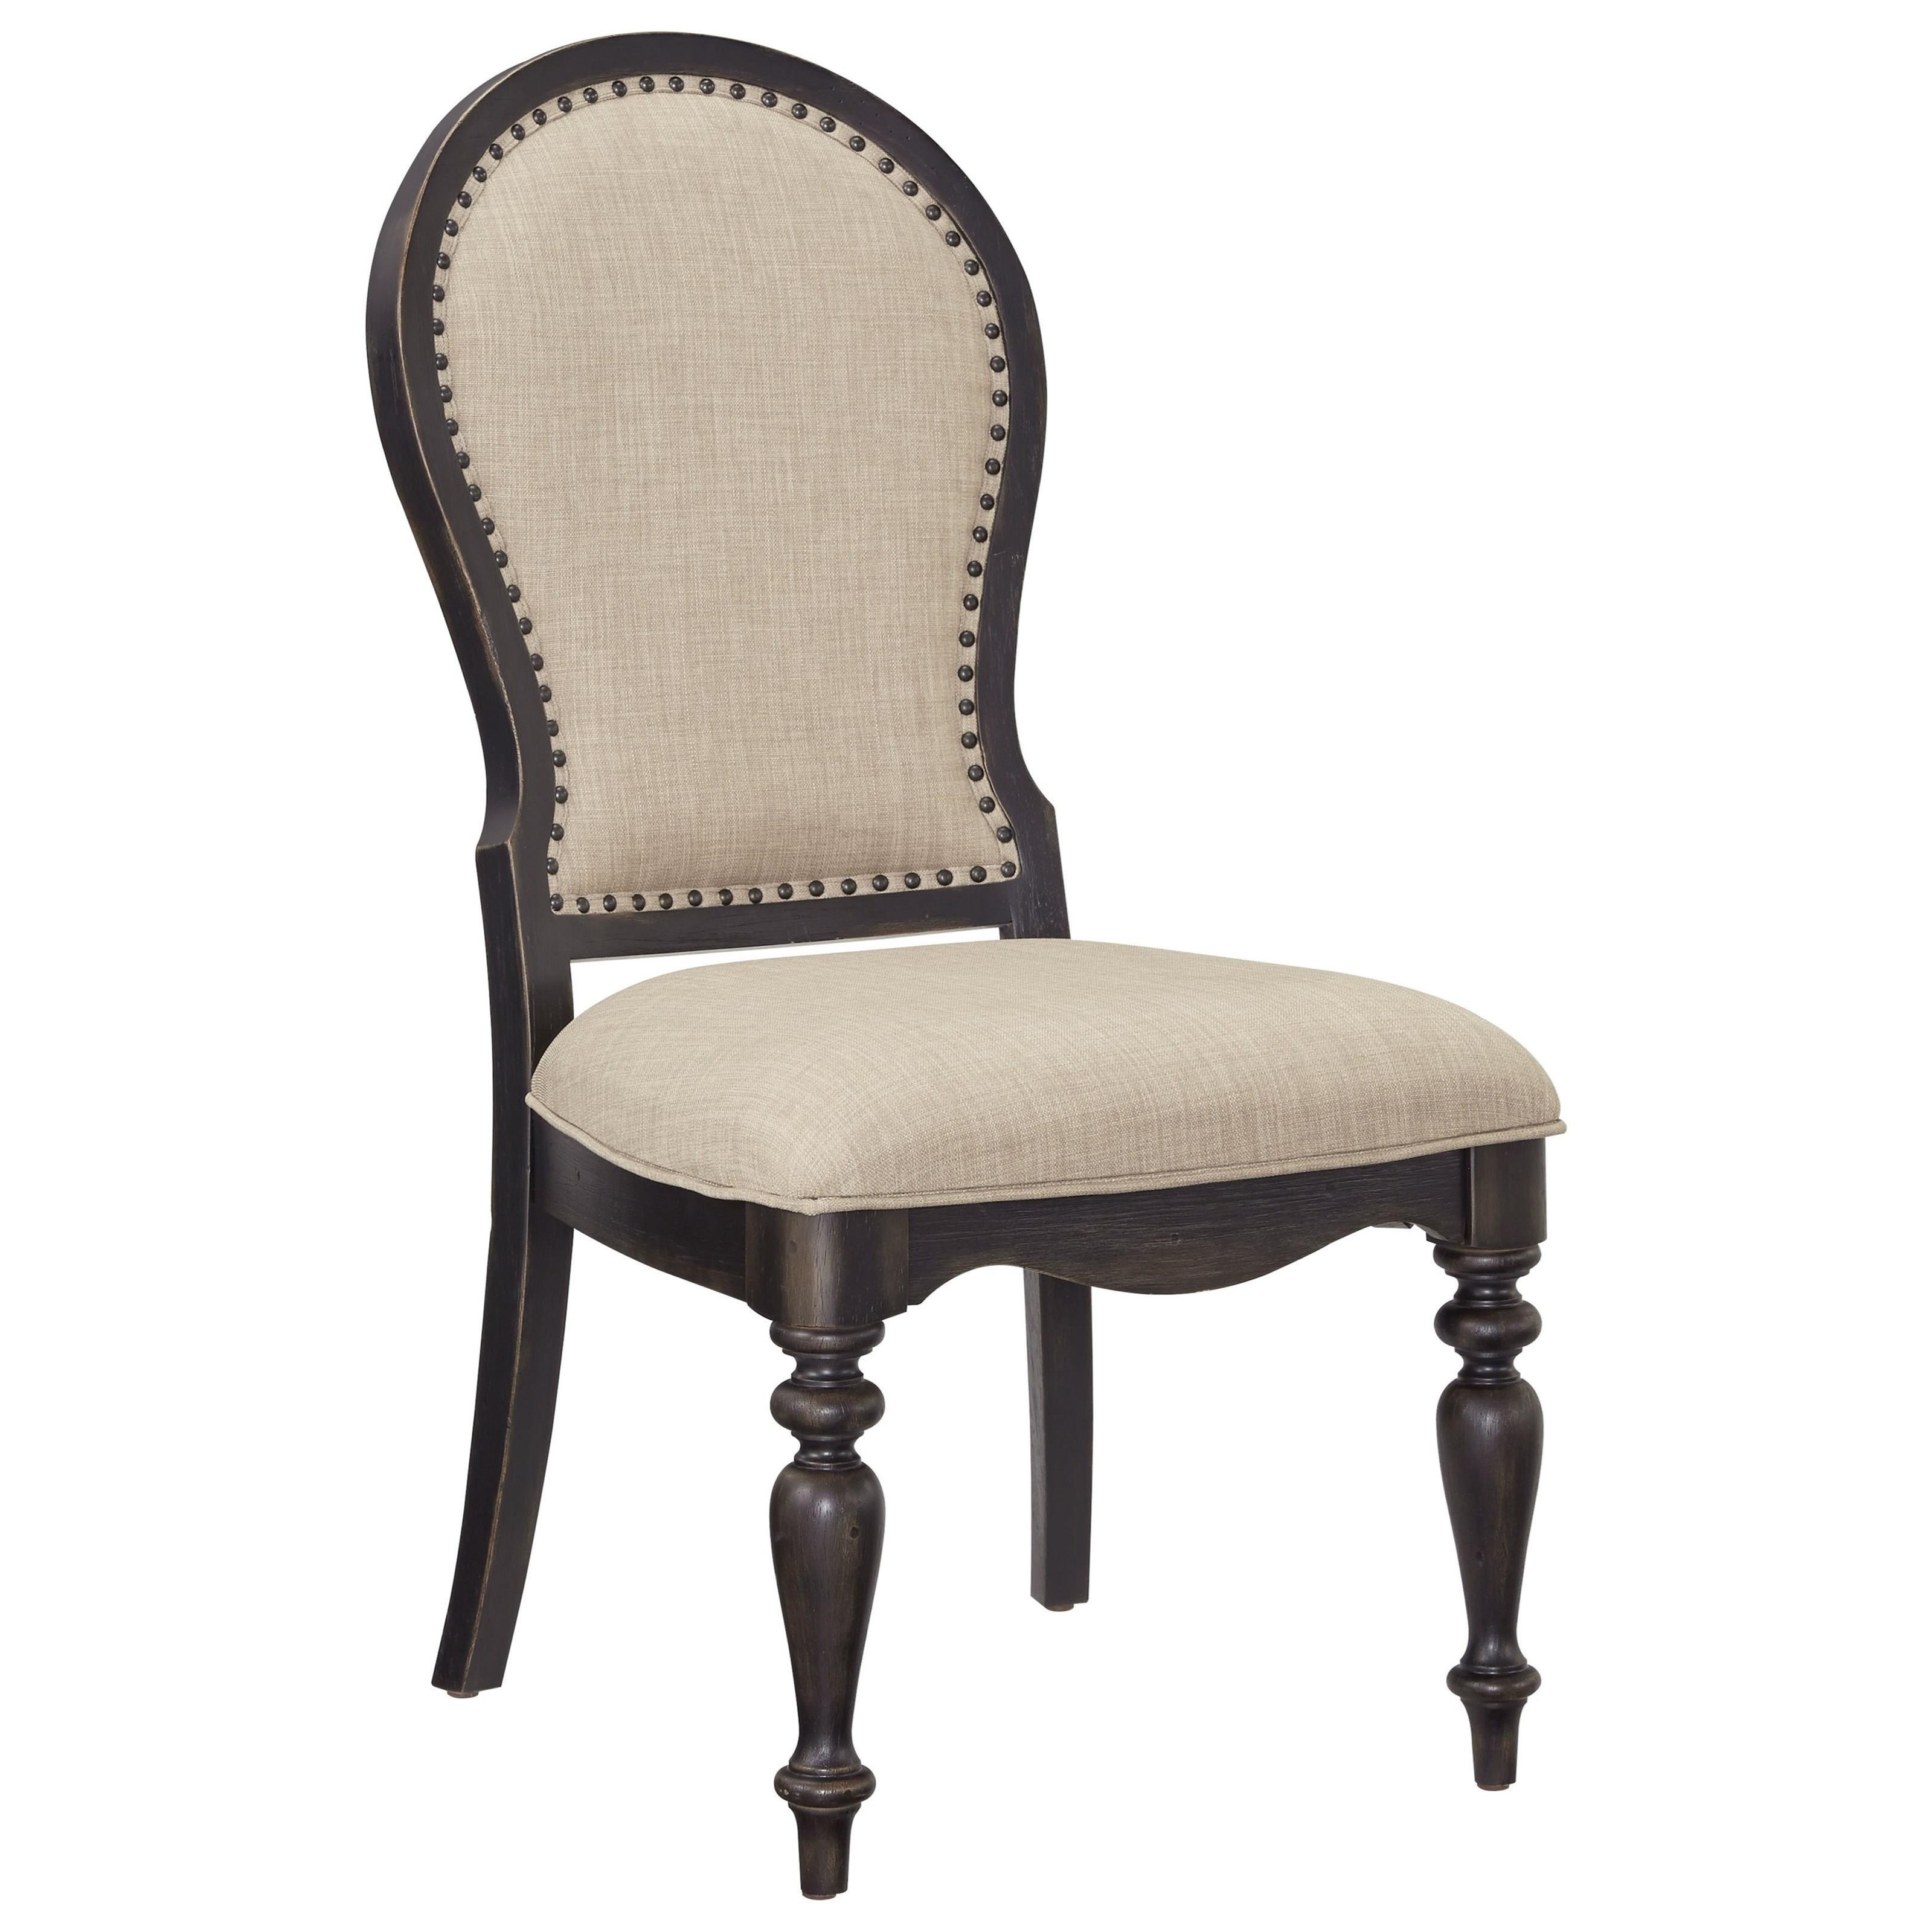 Standard Furniture Cambria Upholstered Side Chair - Item Number: 12284